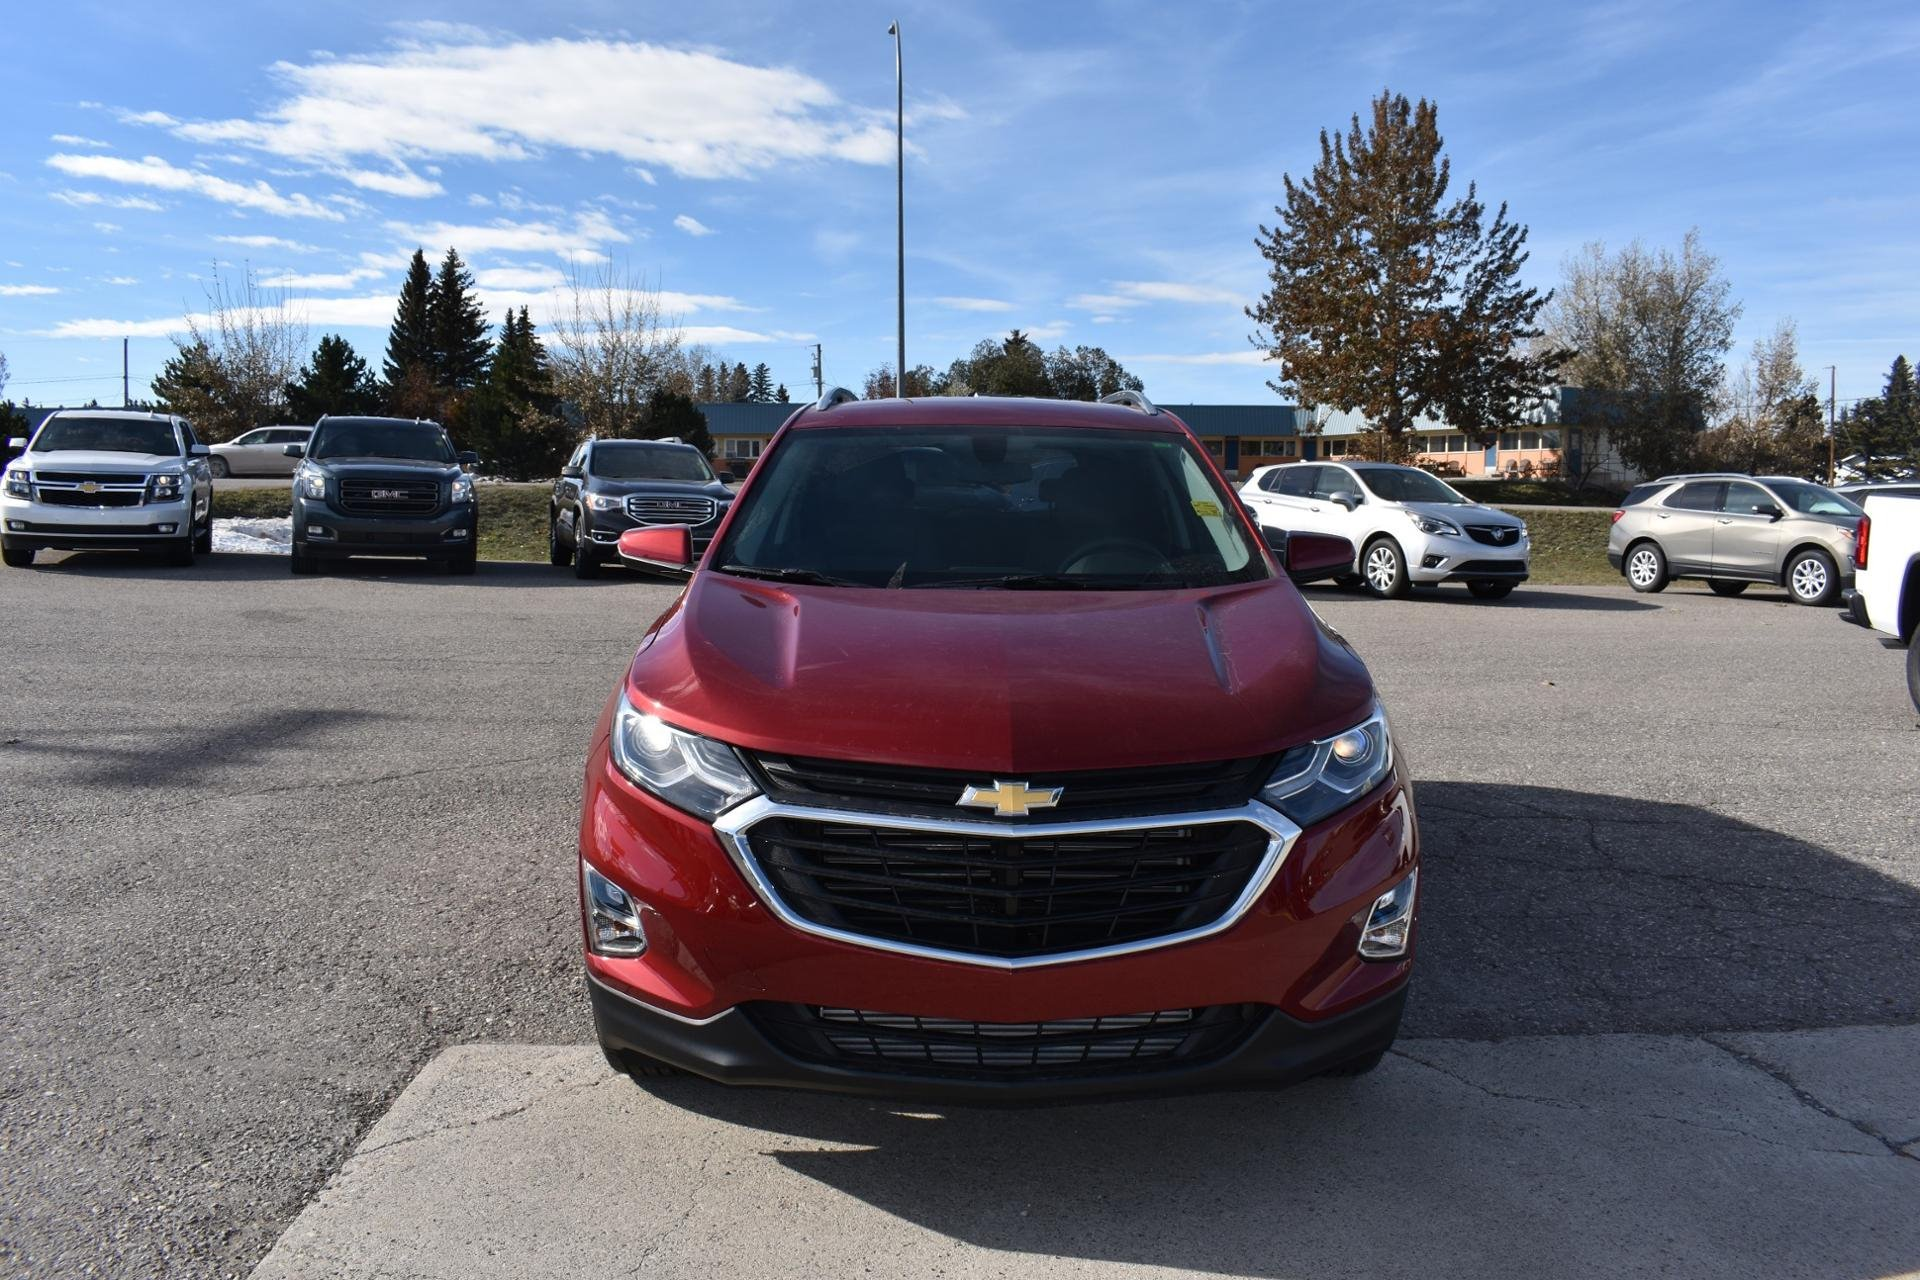 New 2019 Chevrolet-Equinox LS Equinox LS for sale $27,600 at M and V Leasing in Brooklyn NY 11223 1